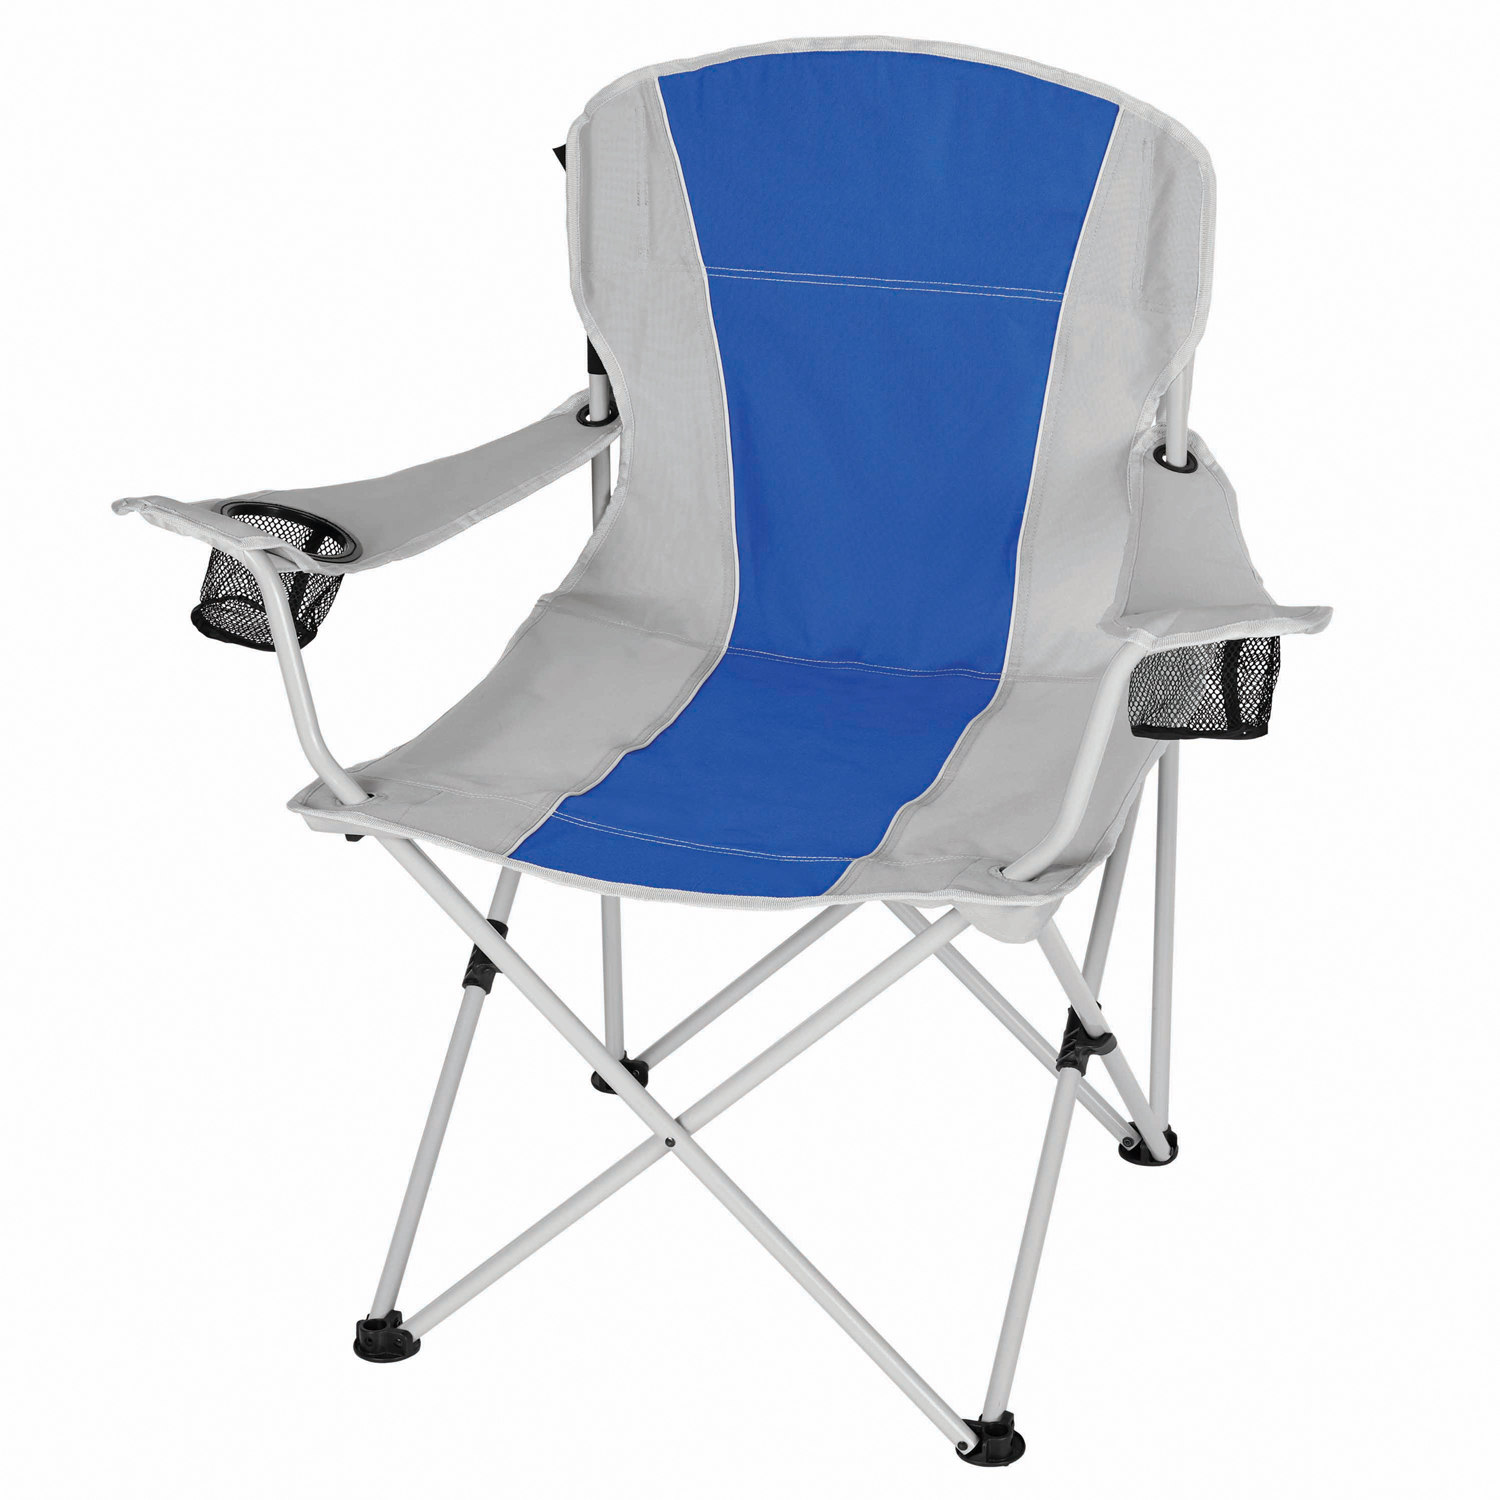 OZARK TRAIL OVERSIZED CHAIR - Walmart.com